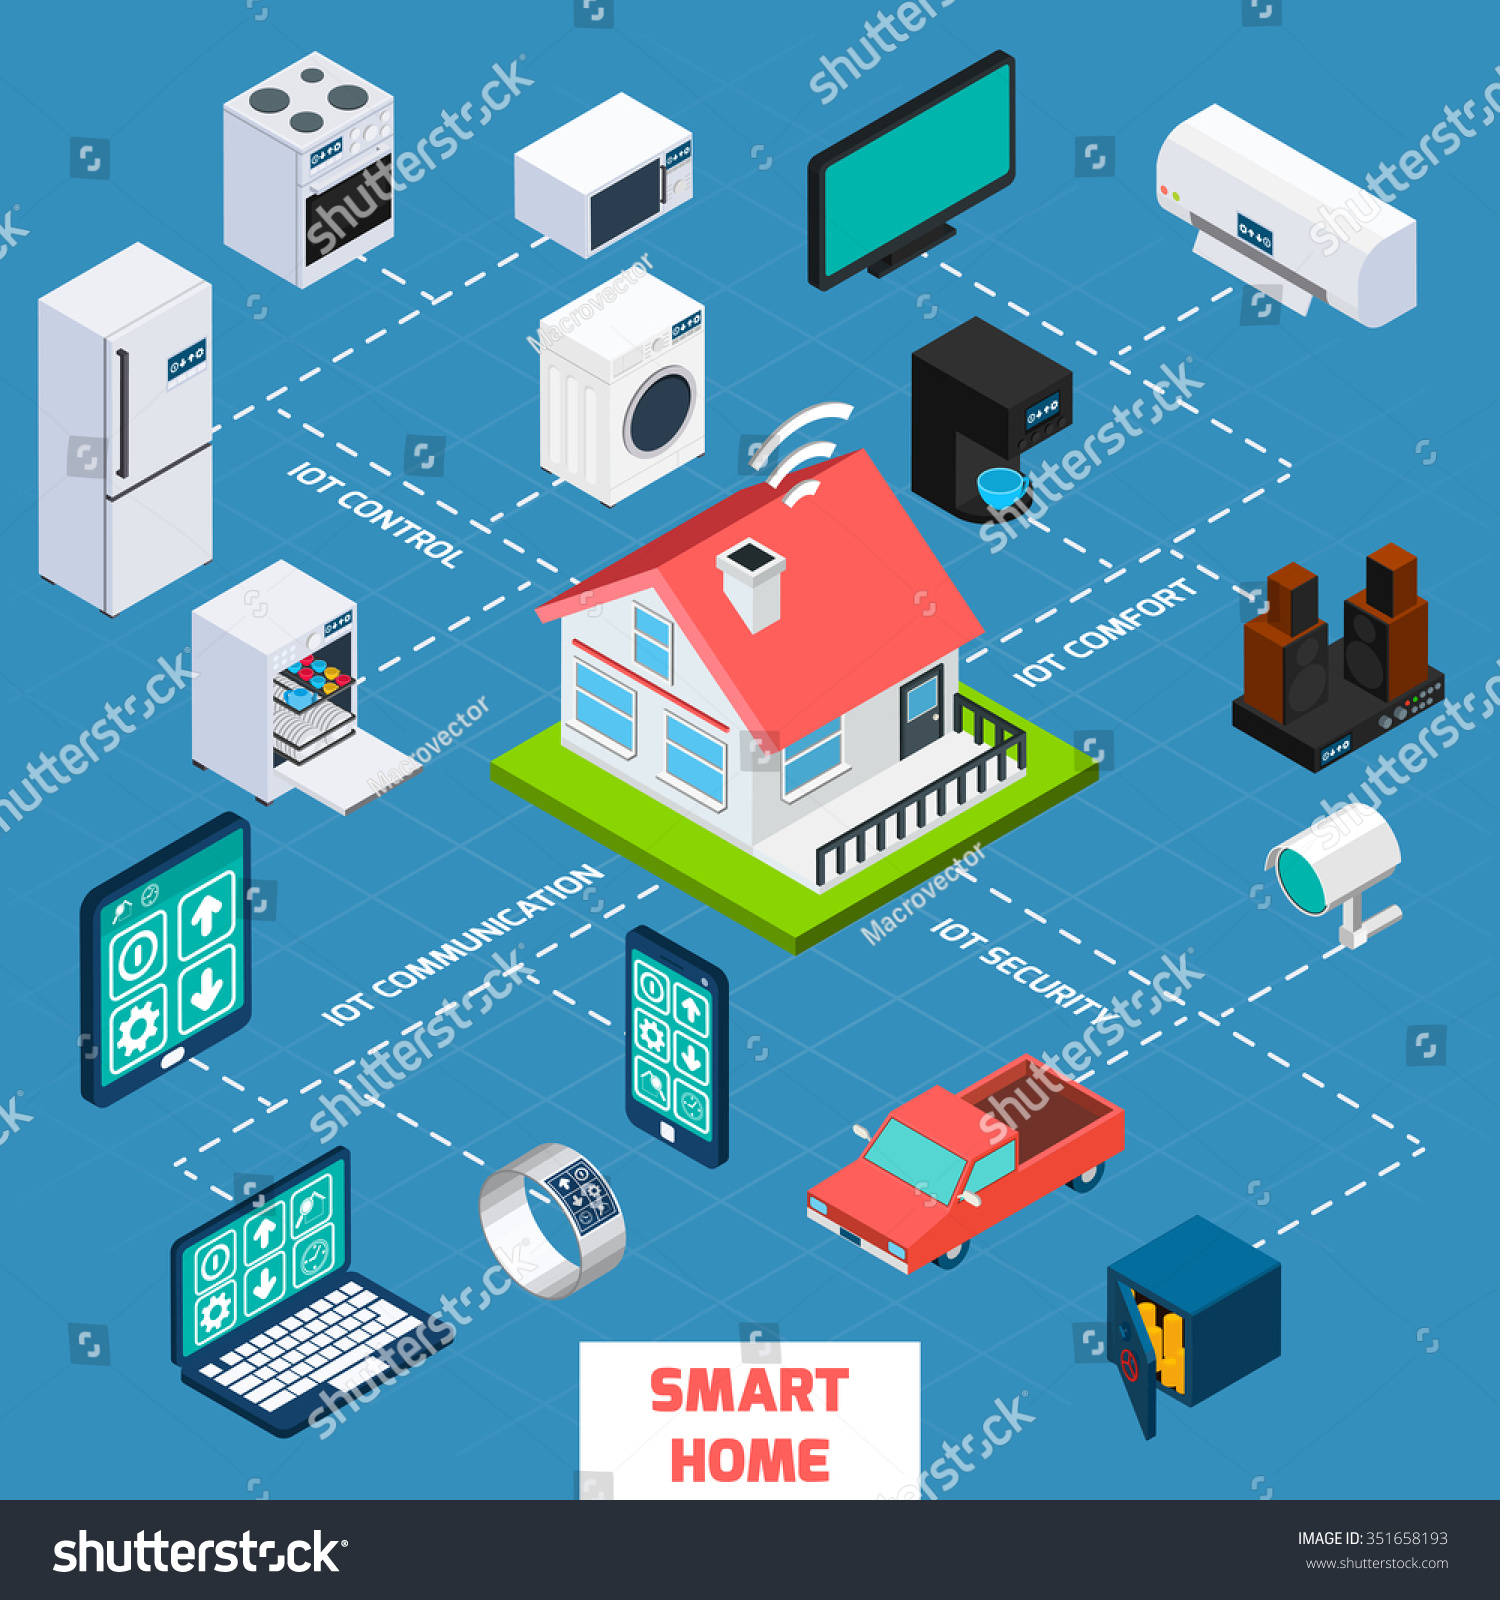 Stock Vector Smart Home Iot Inter  Of Things Control  fort And Security Isometric Flowchart Icon Poster